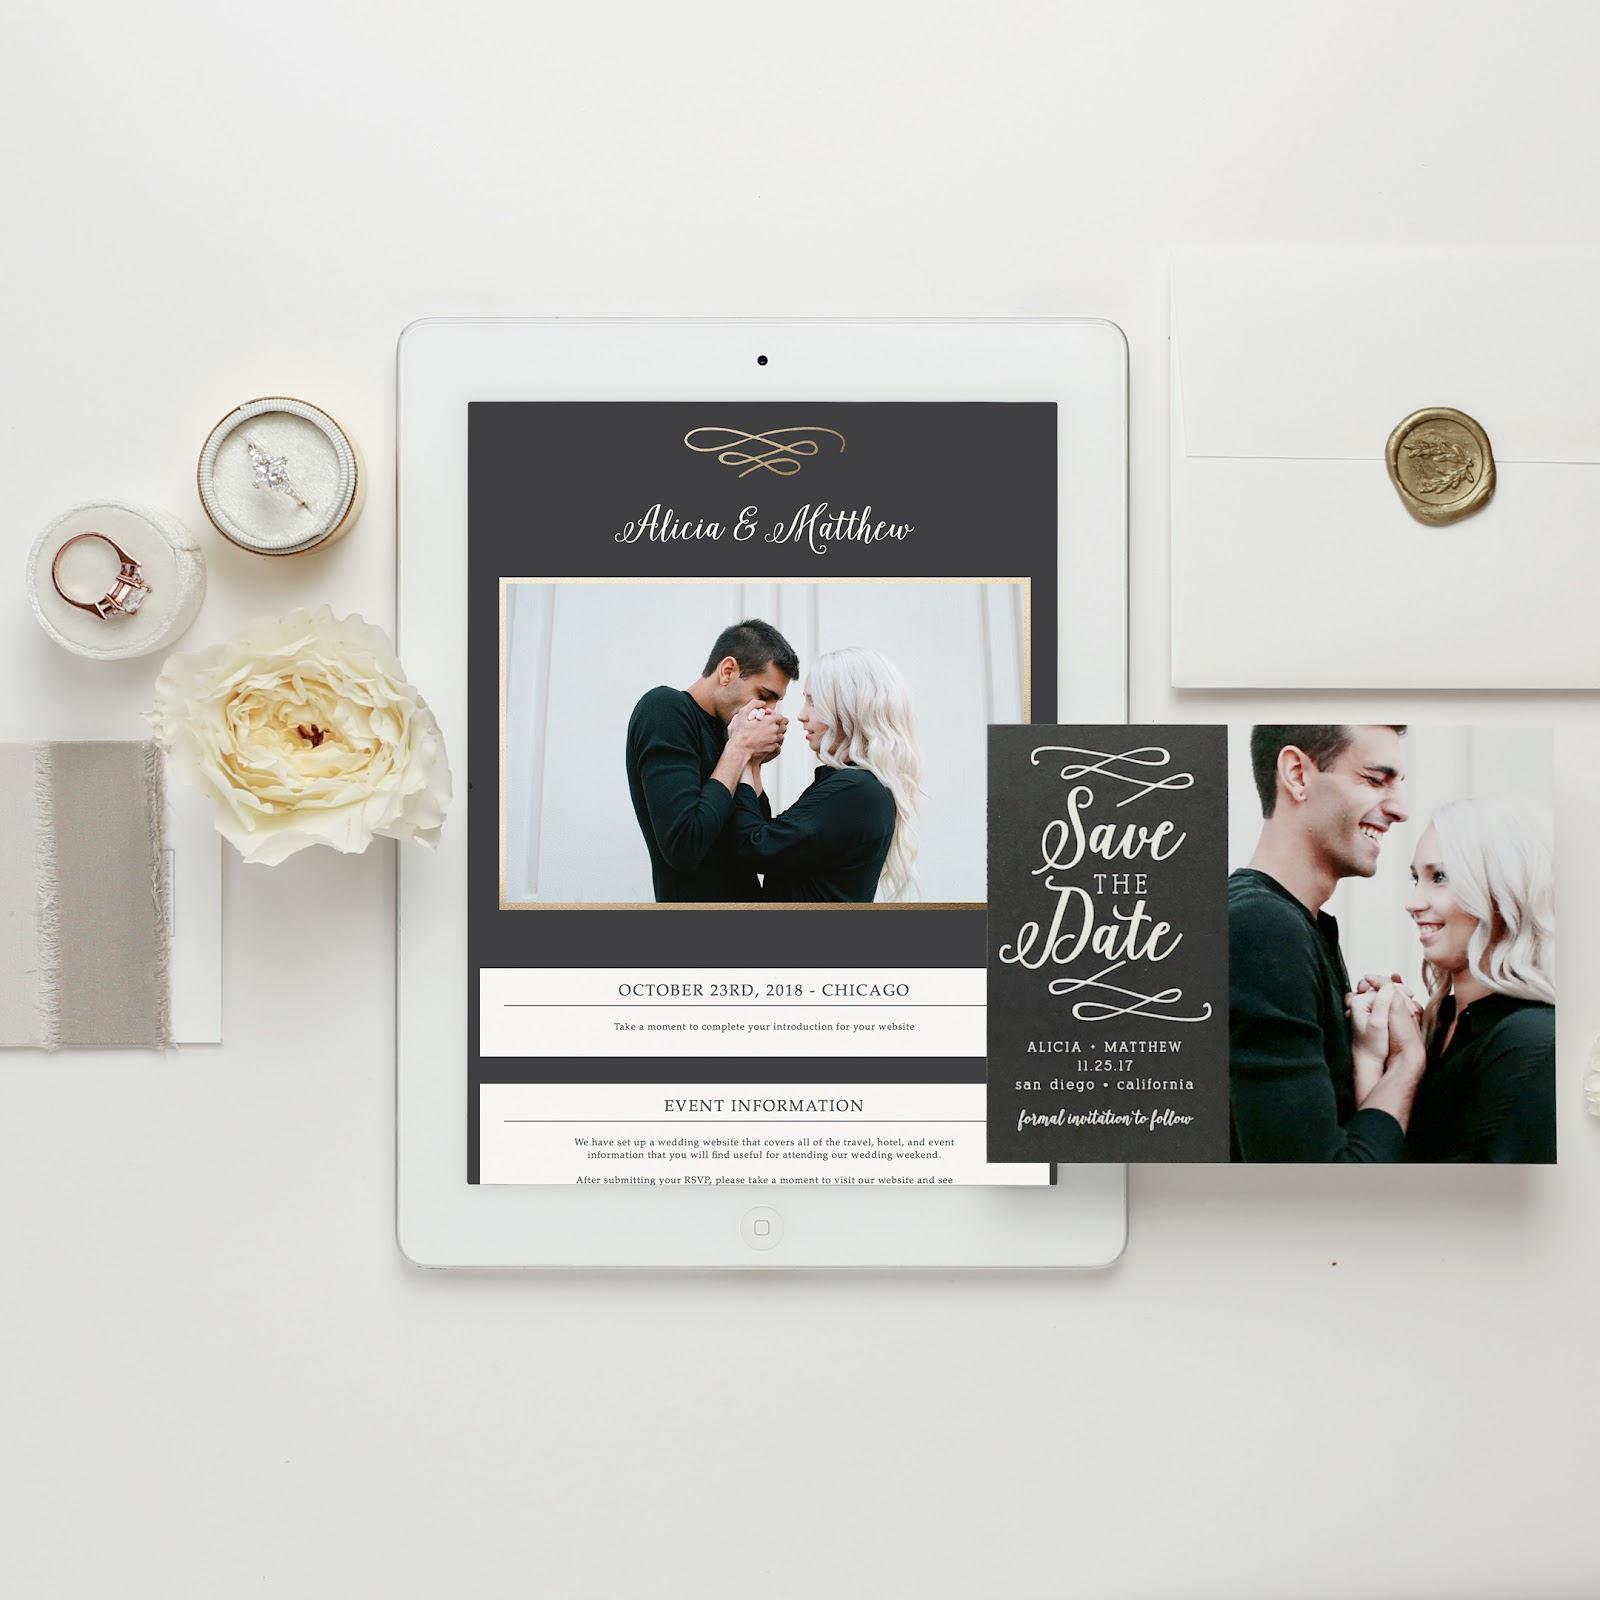 iPad displaying wedding website next to matching paper save the date card.